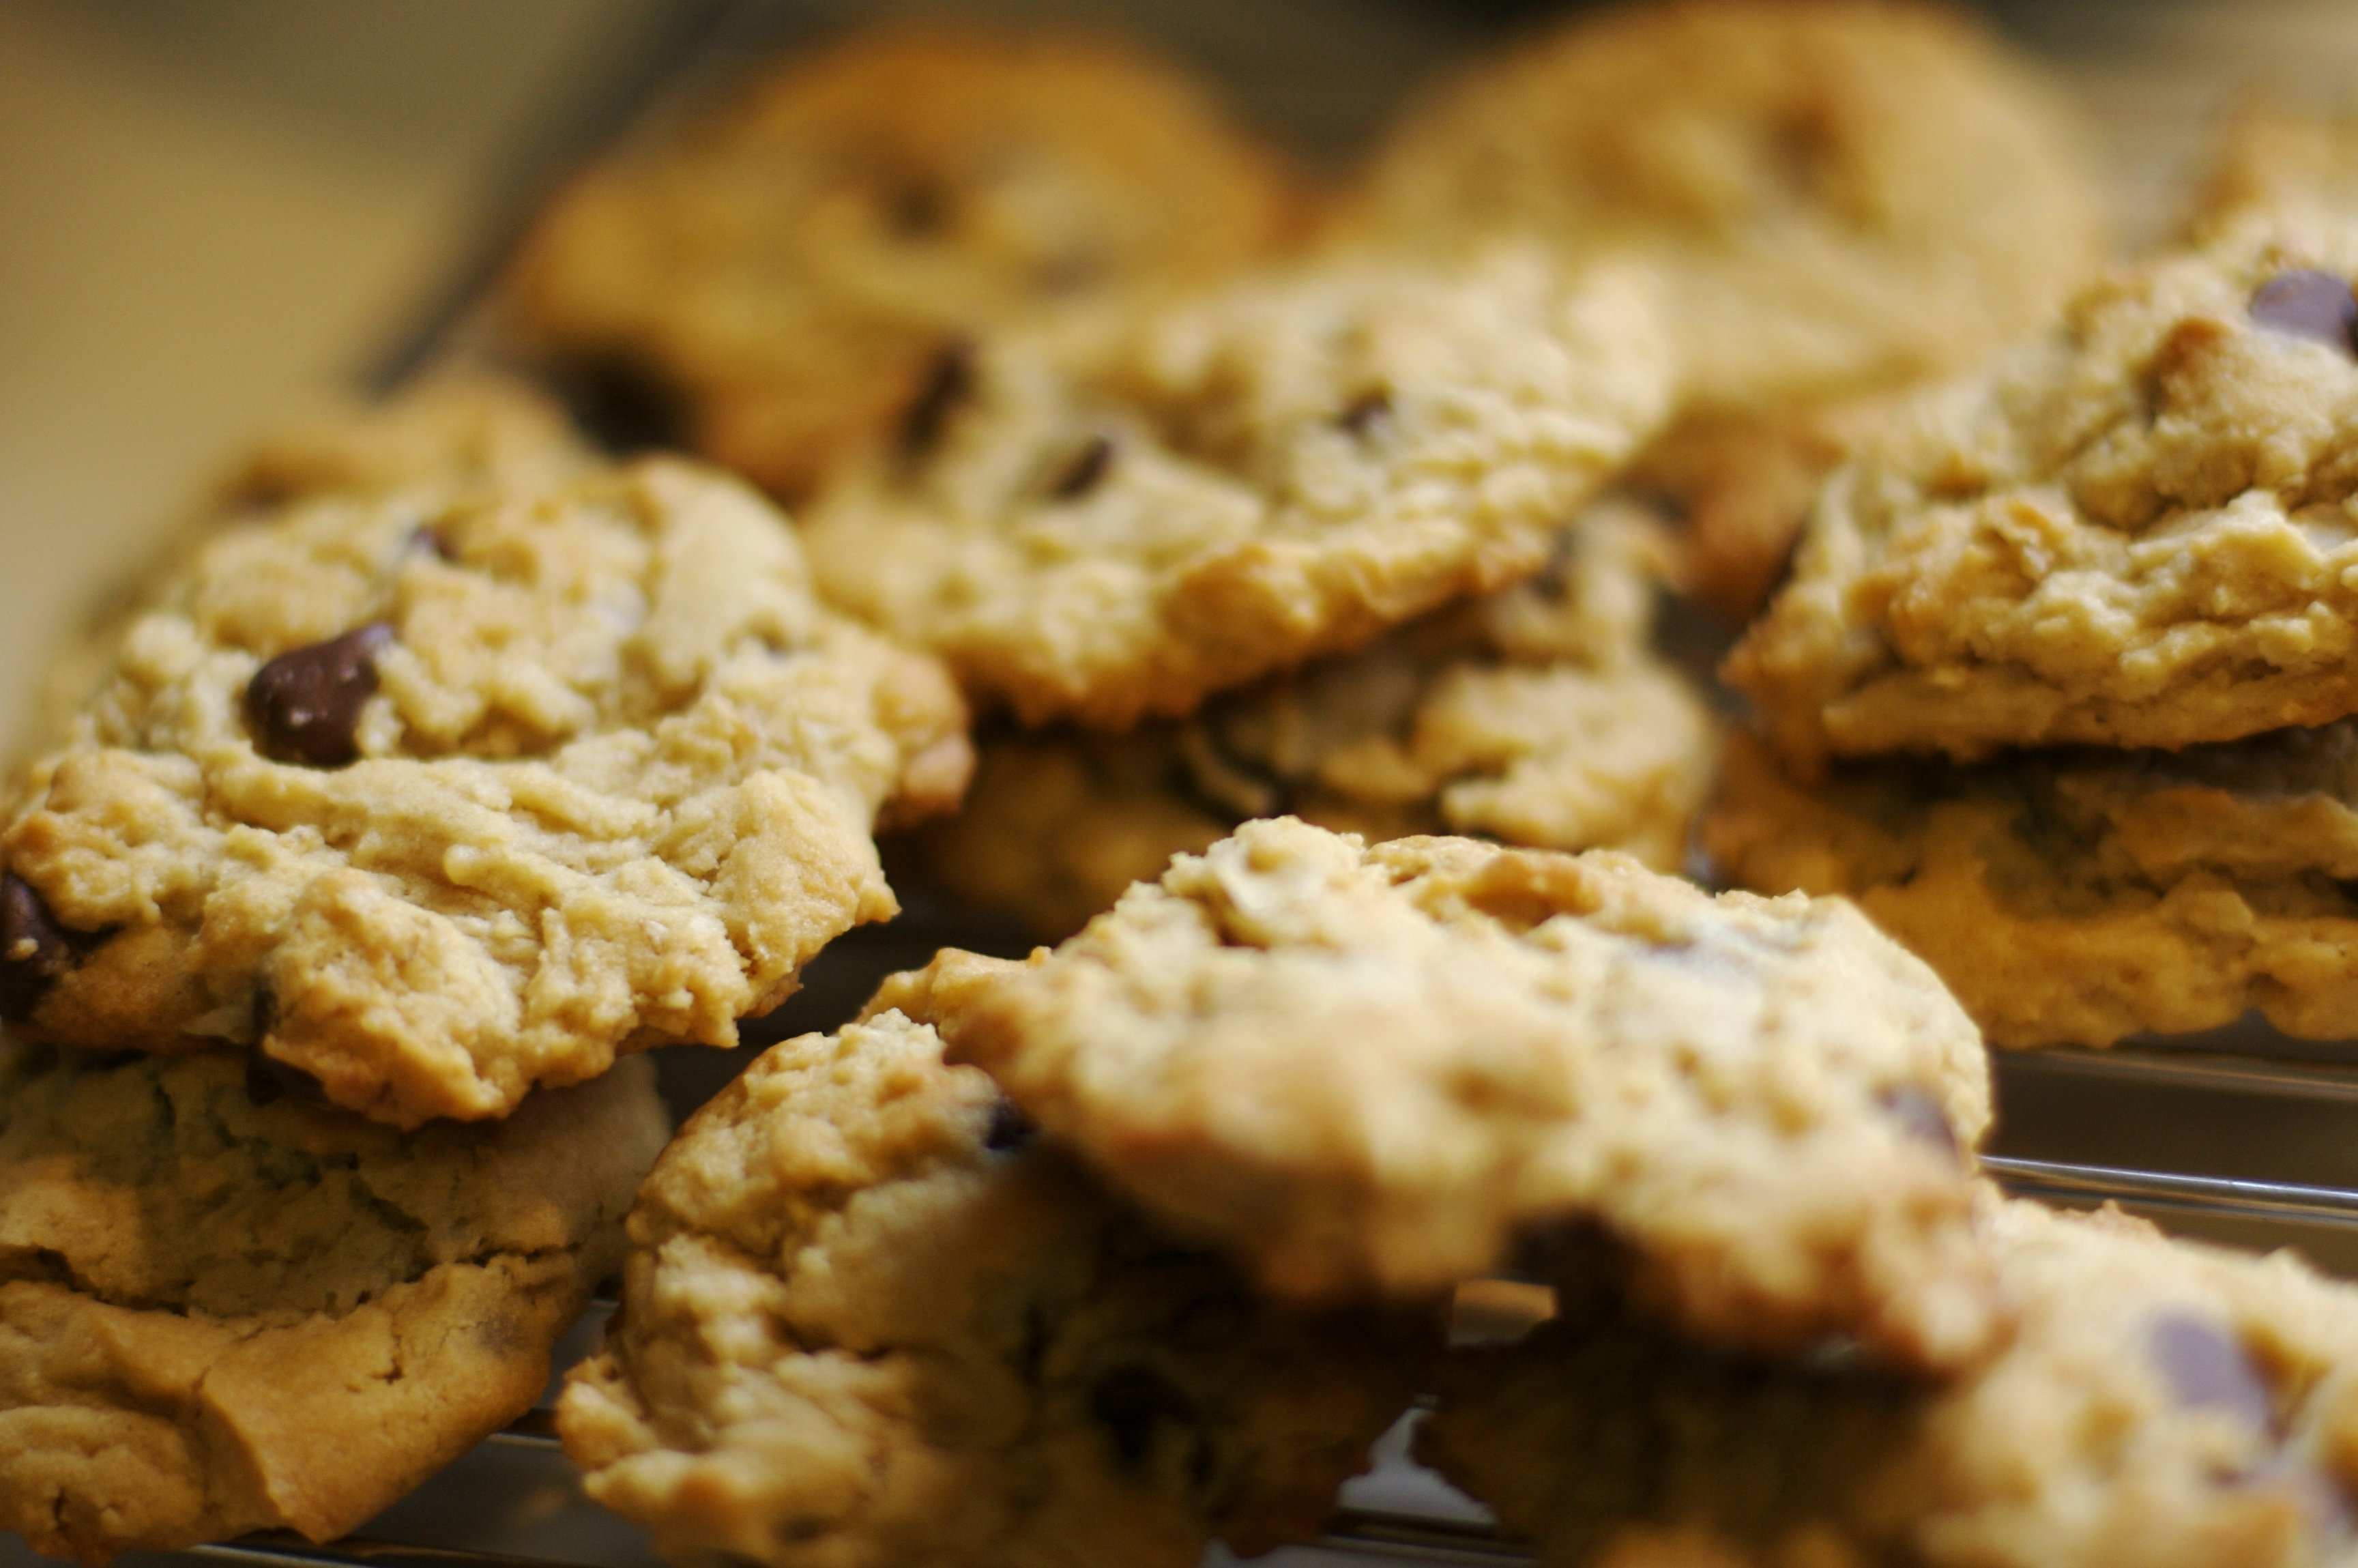 Chocolate Chip Cookie Wikipedia Commons